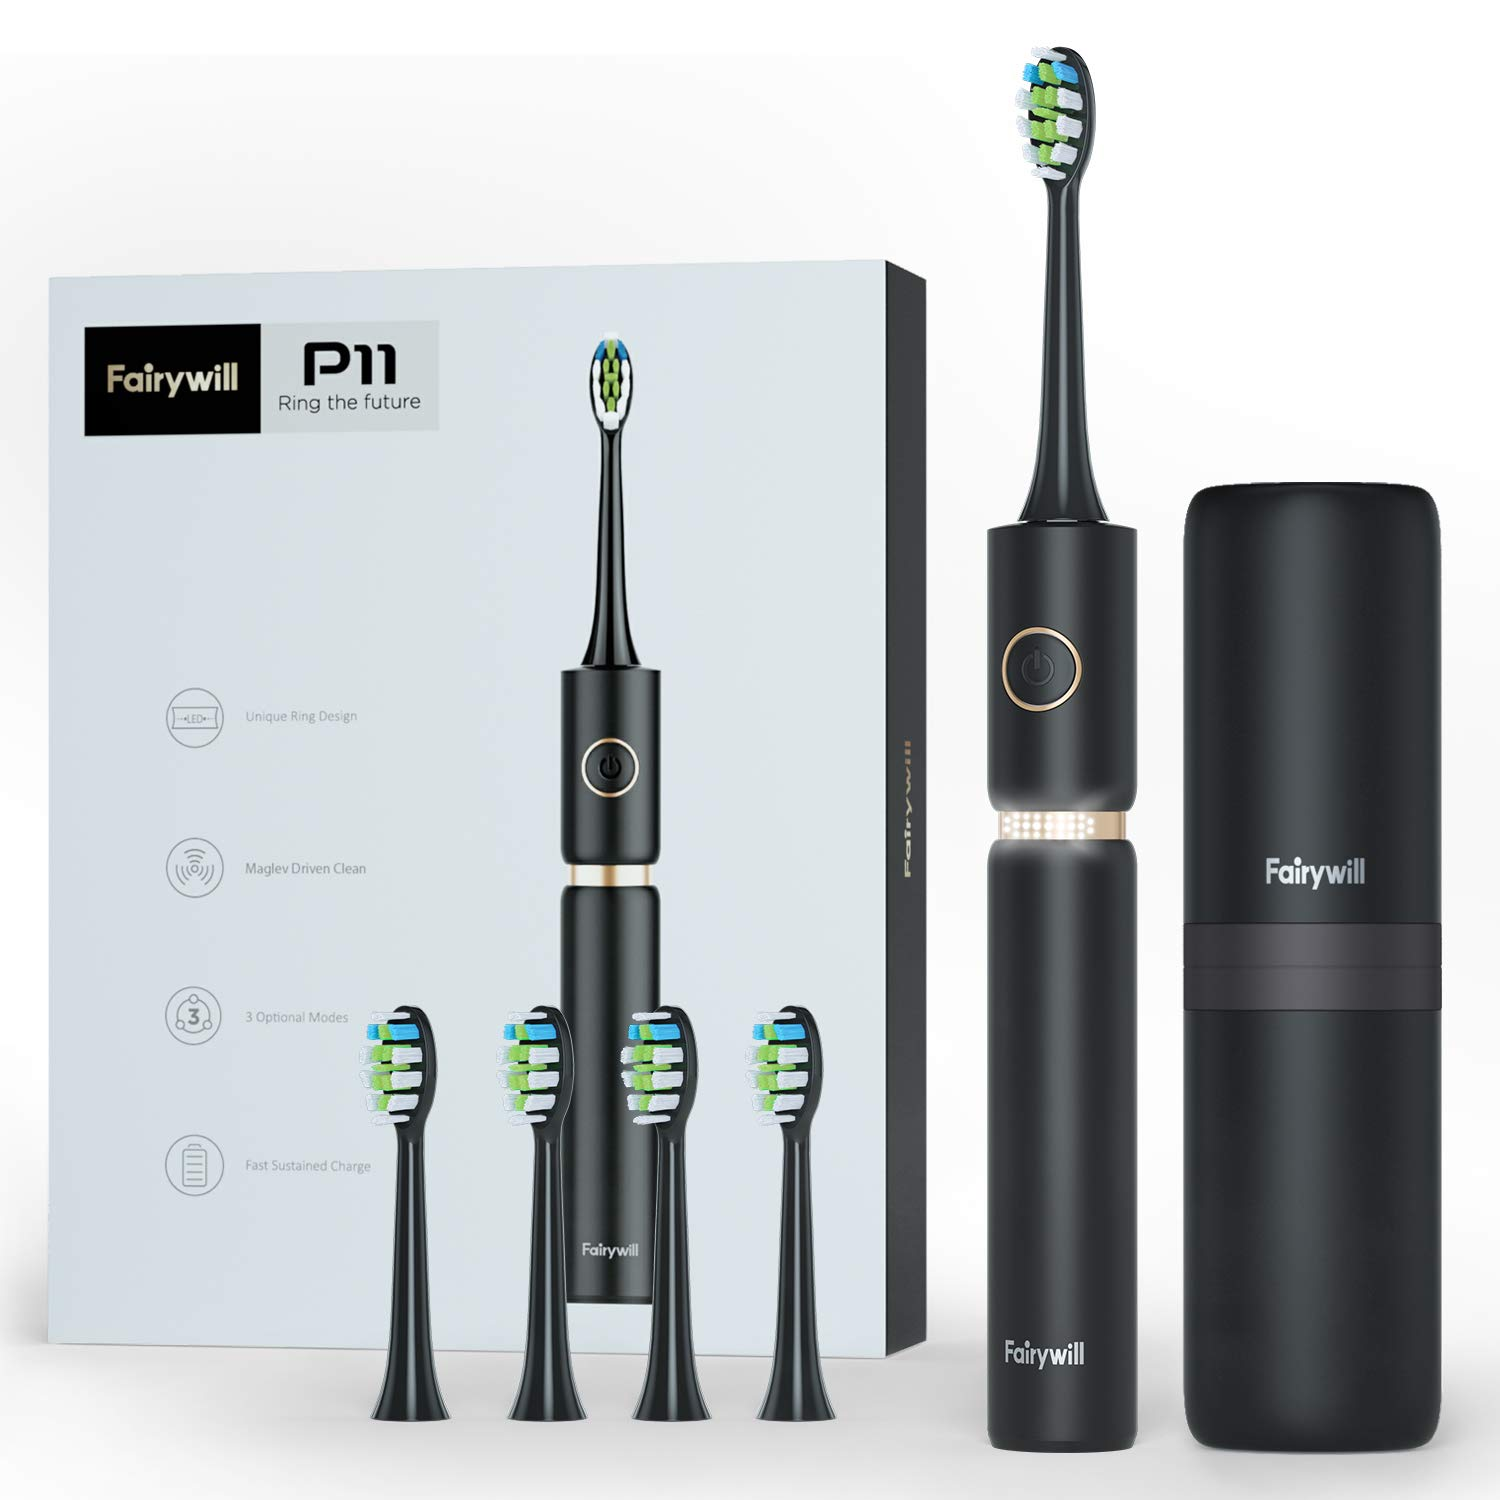 Sonic Whitening Electric Toothbrush – Travel Rechargeable Toohthbrush for Adults, 62,000 VPC Turbo Clean Fairywill P11 Plus in Black